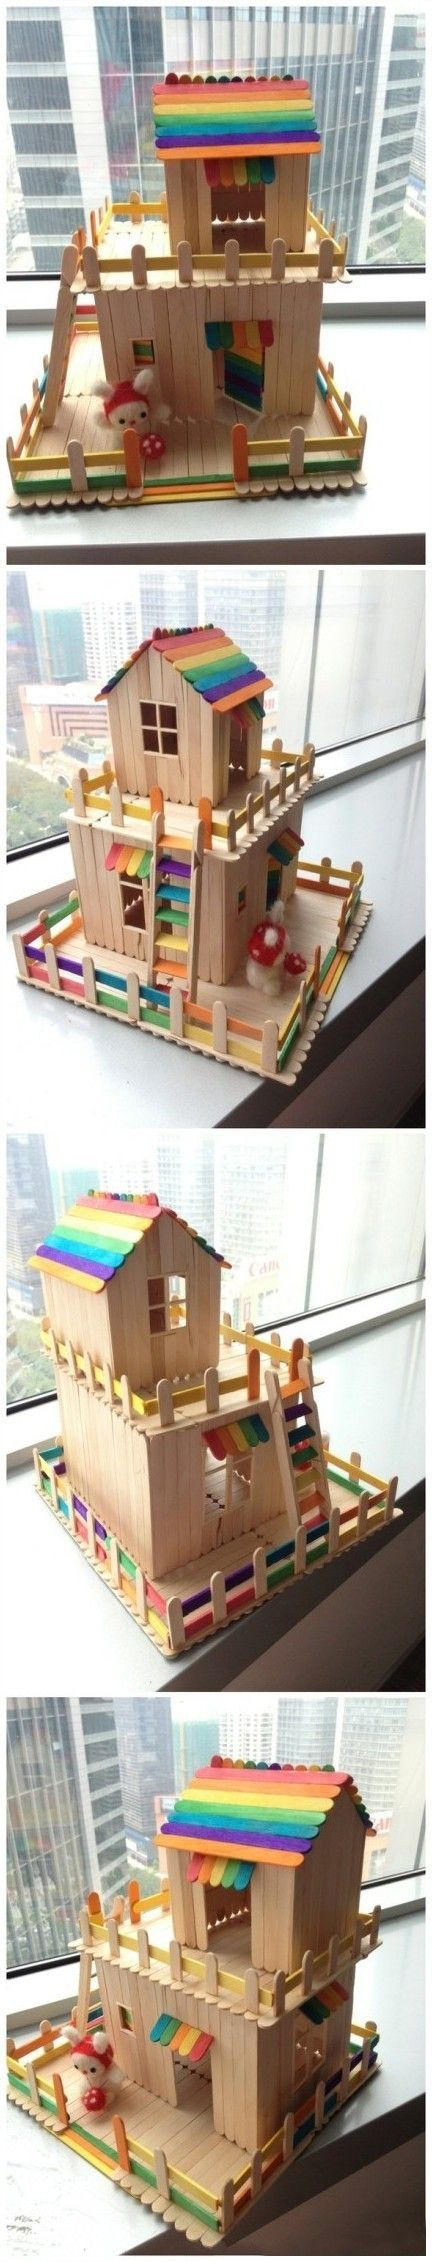 Craft stick - Popsicle project (only photos)  http://www.pinterest.com/missrena/kid-crafts/